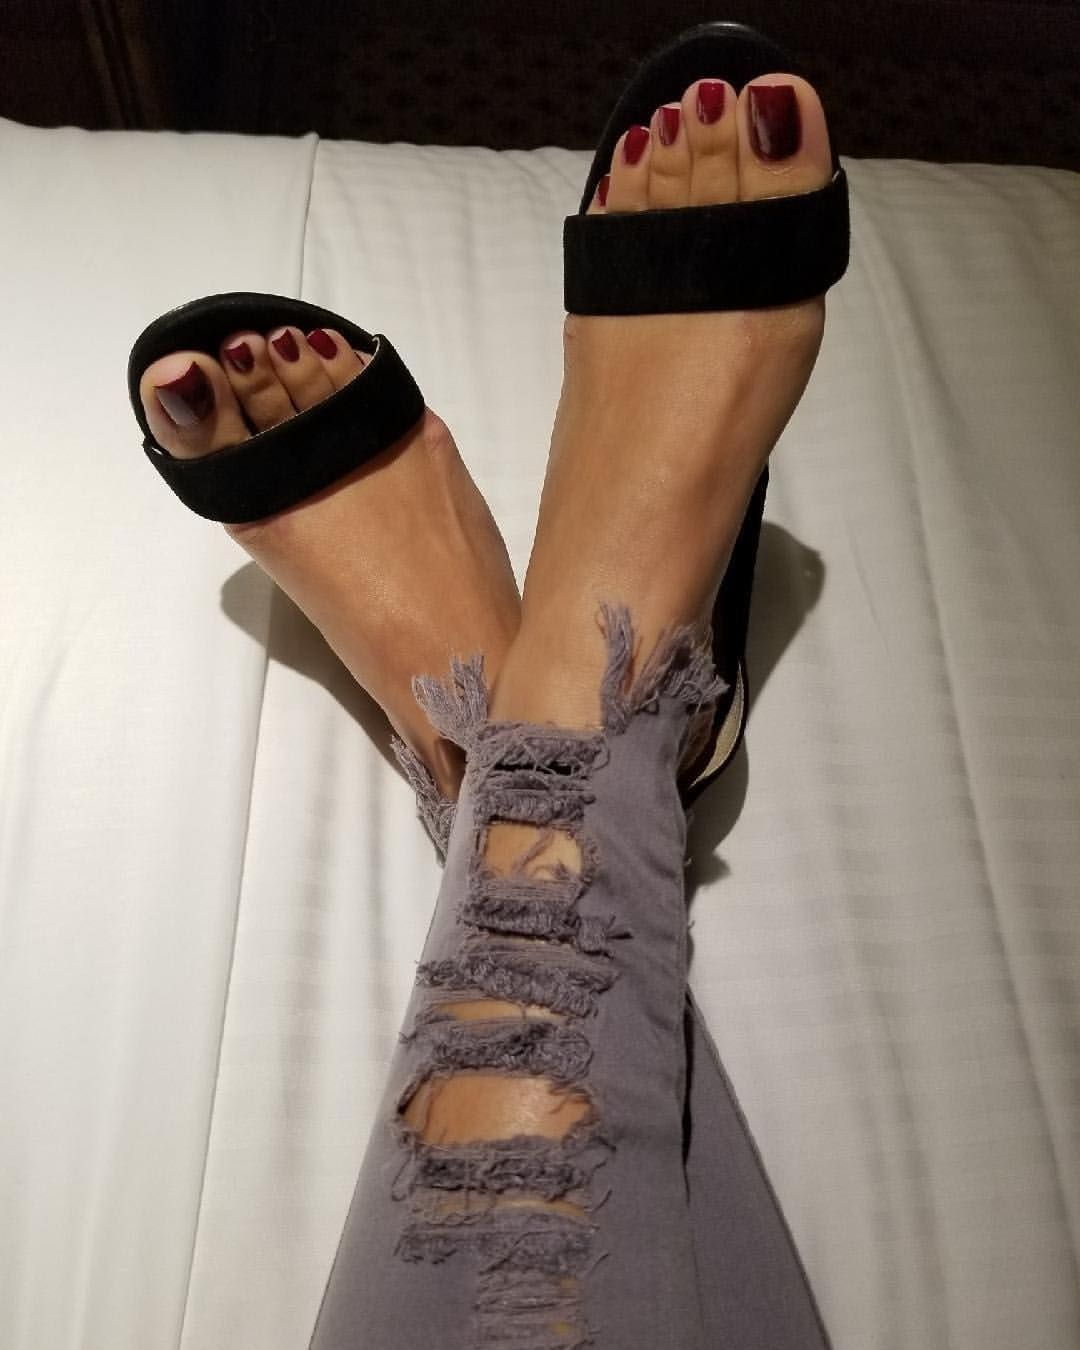 Pin on Pretty toes :)